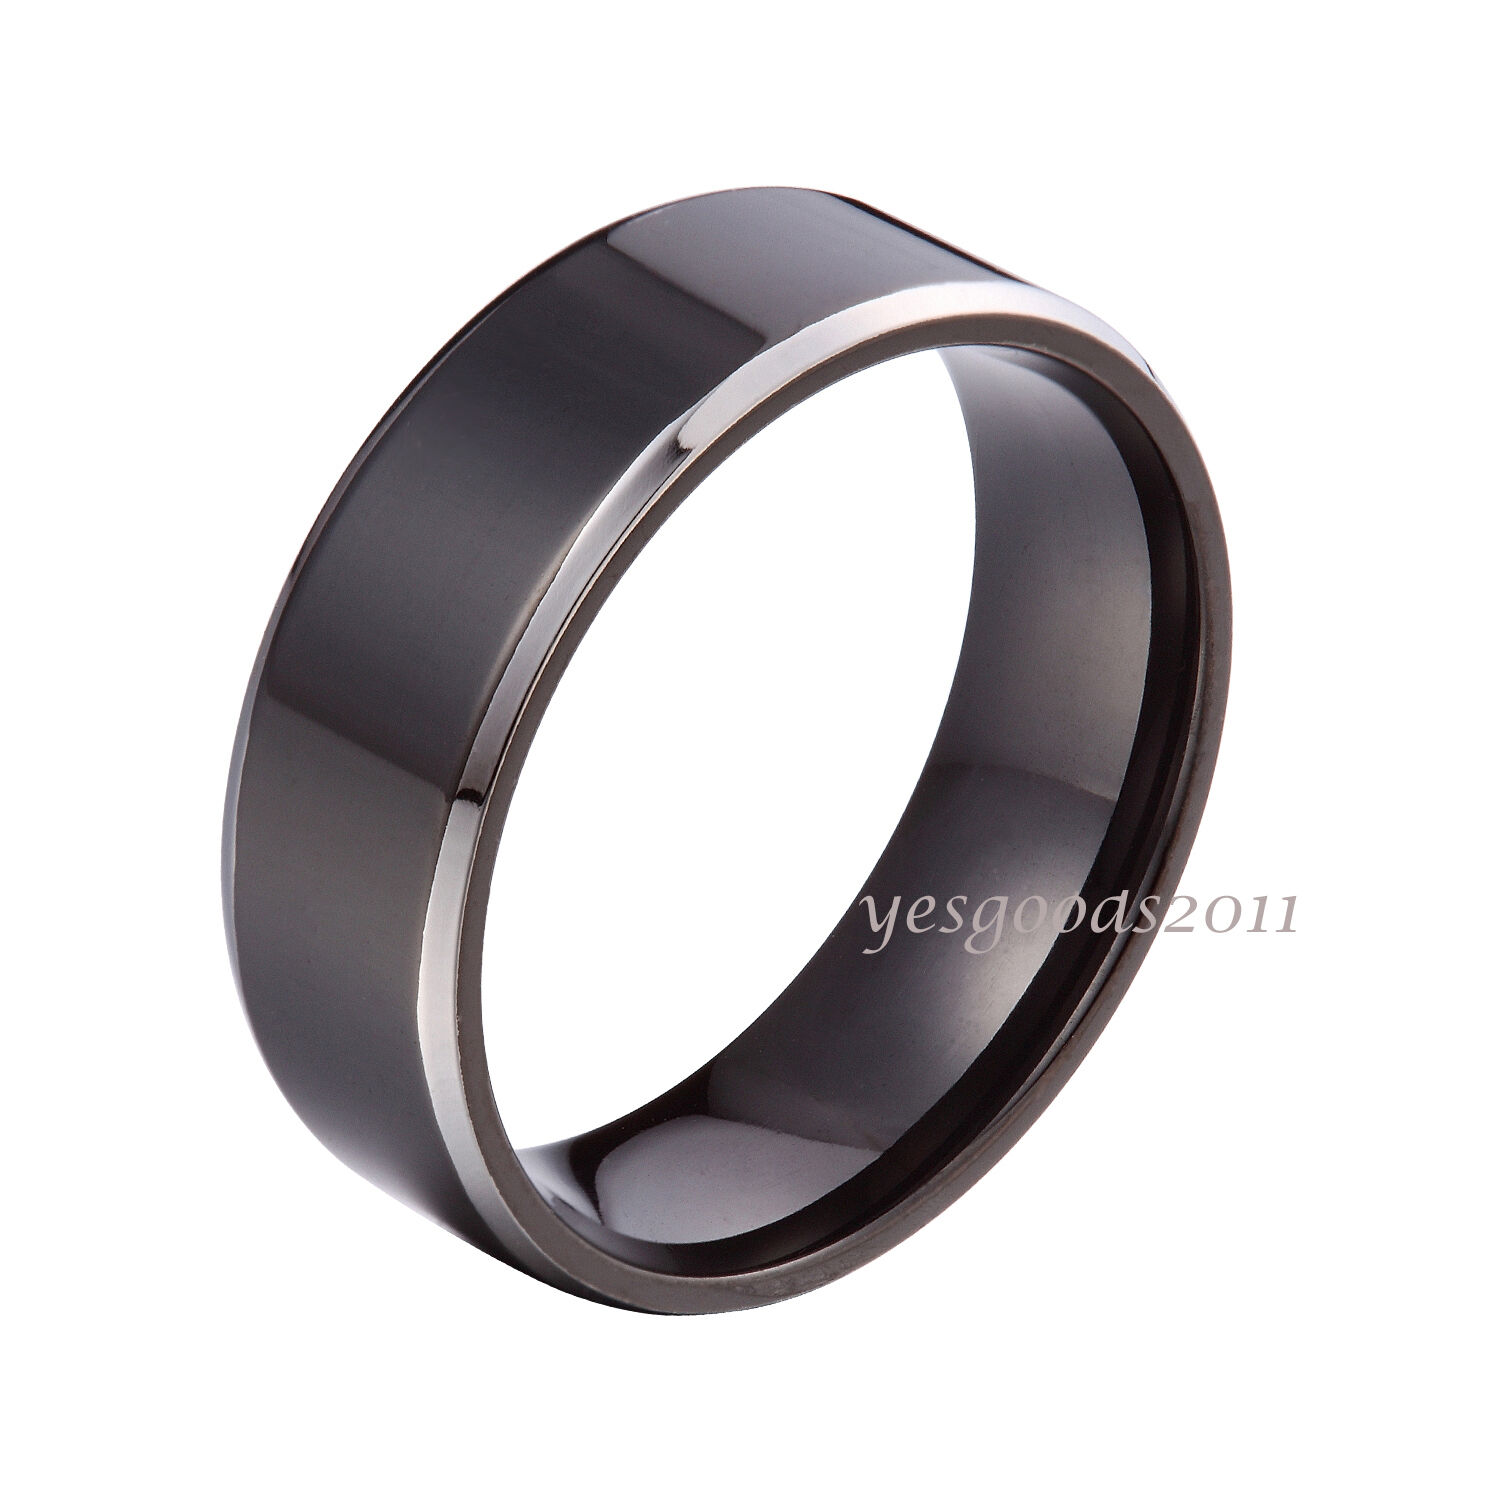 6mm 8mm Black Stainless Steel Plain Comfort Fit Wedding Band Ring Size 5 14 HS13